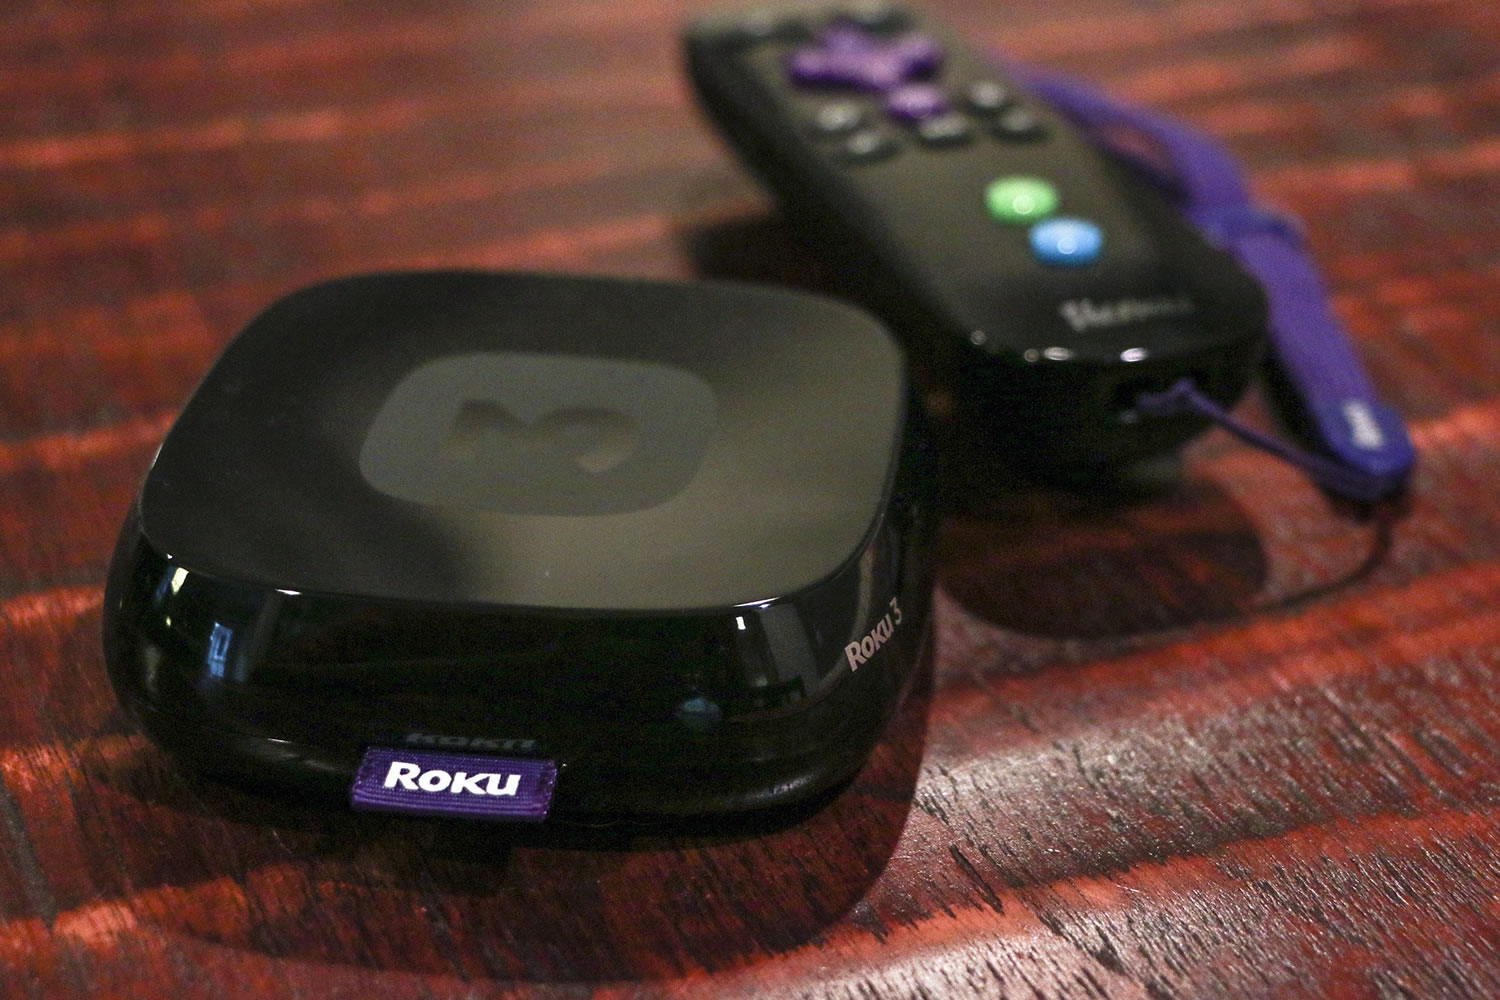 Tech Test: New online cable bundles have their pluses